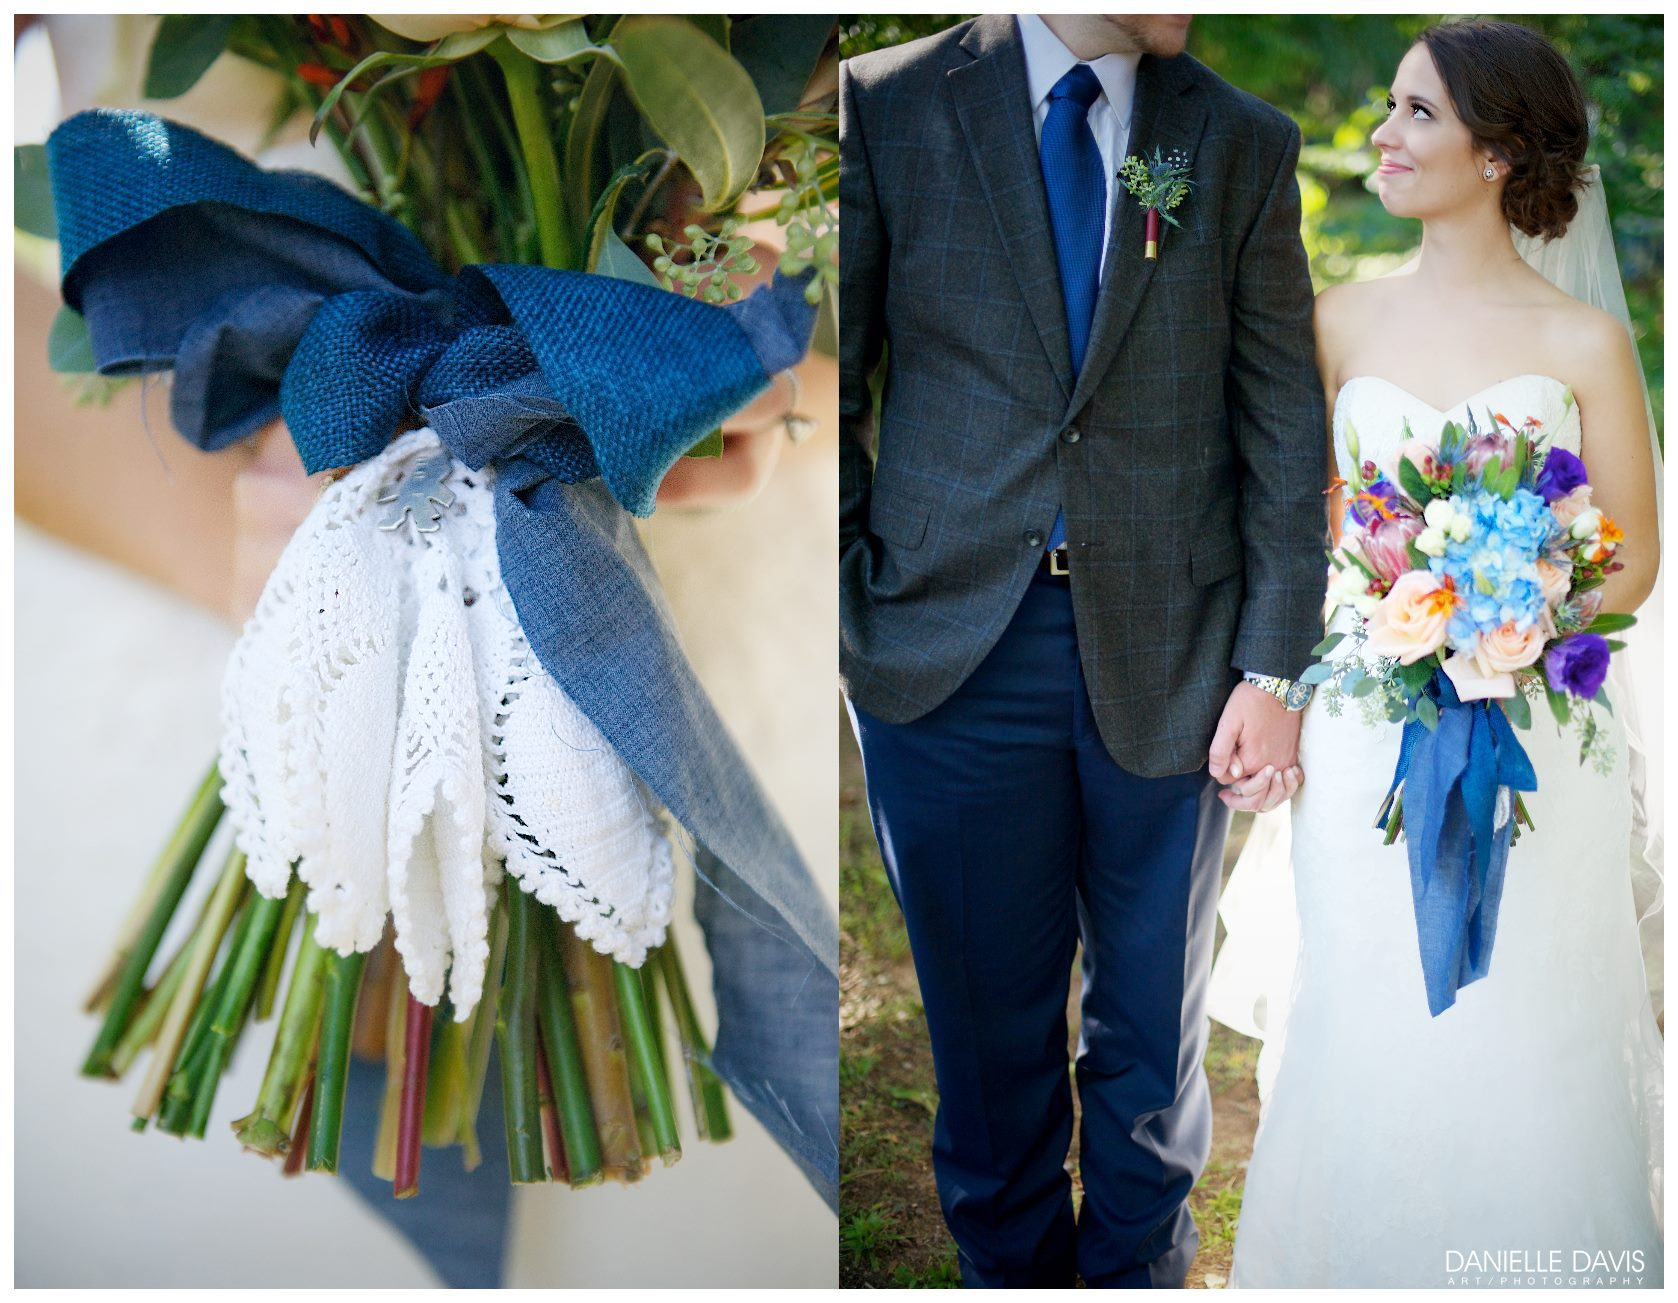 Danielle Davis Art/Photography , from Emily + Blake's wedding at The Barn. Protea and chambray are two other elements I'm LOVING for 2015 weddings!